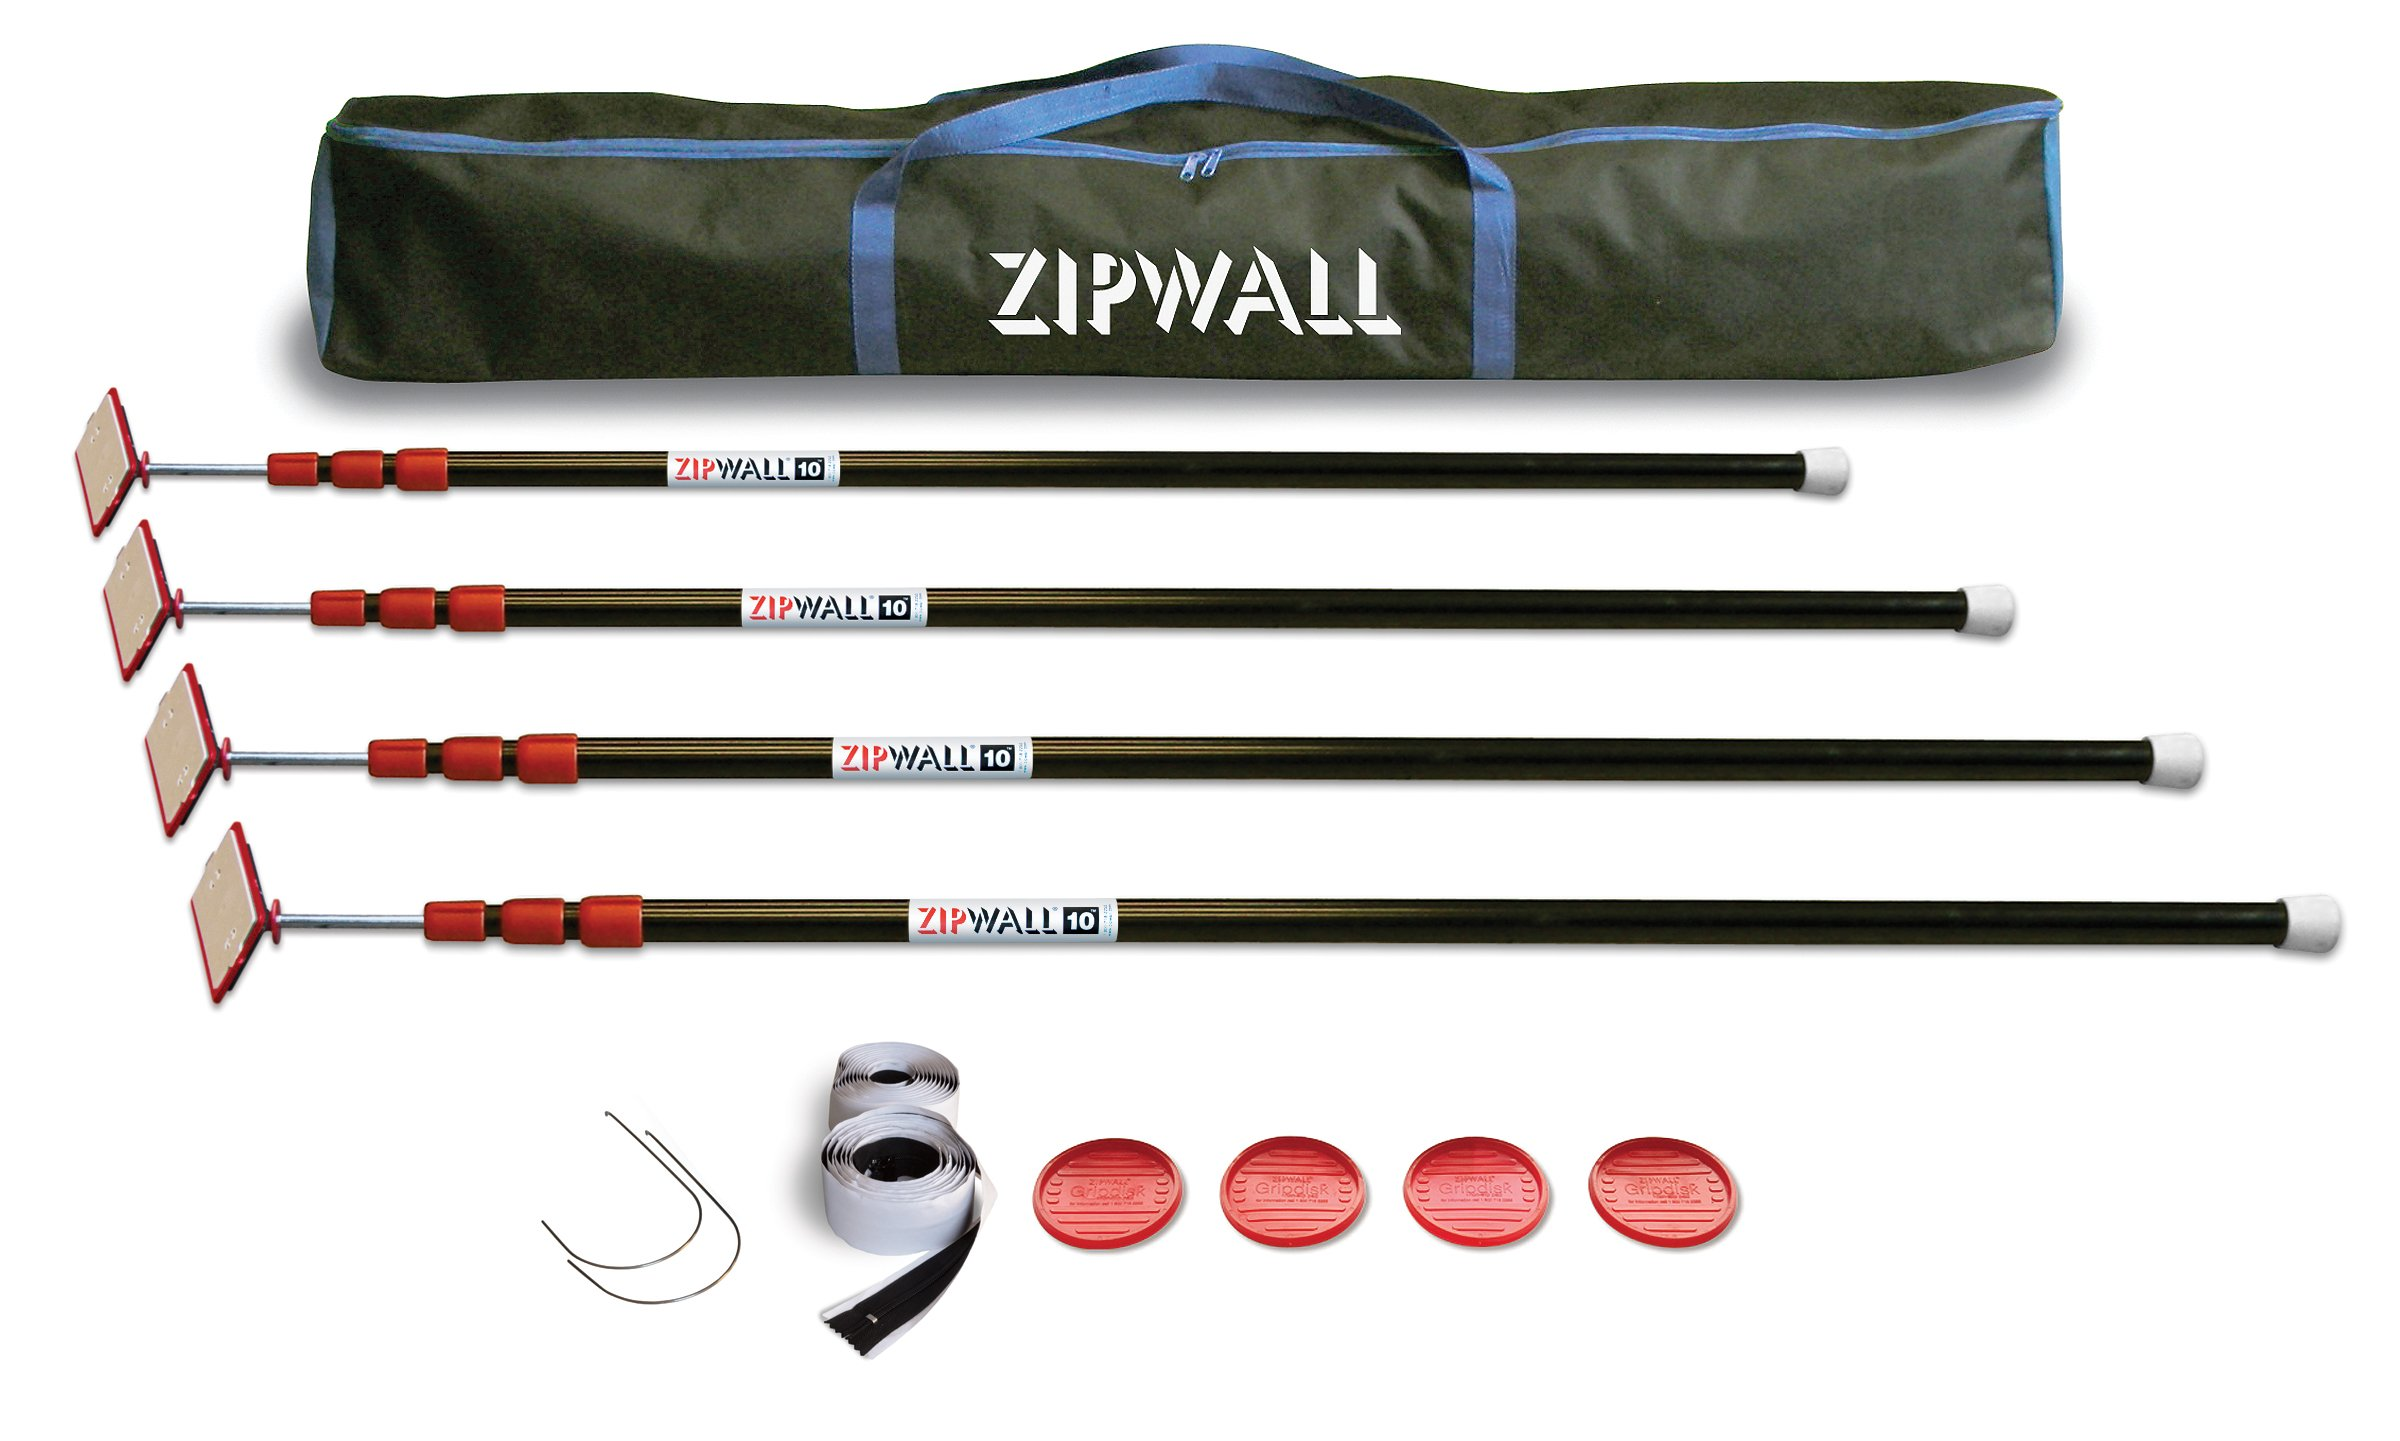 ZipWall ZP4 ZipPole 10-Foot Spring-Loaded Poles for Dust Barriers, 4-Pack by ZipWall